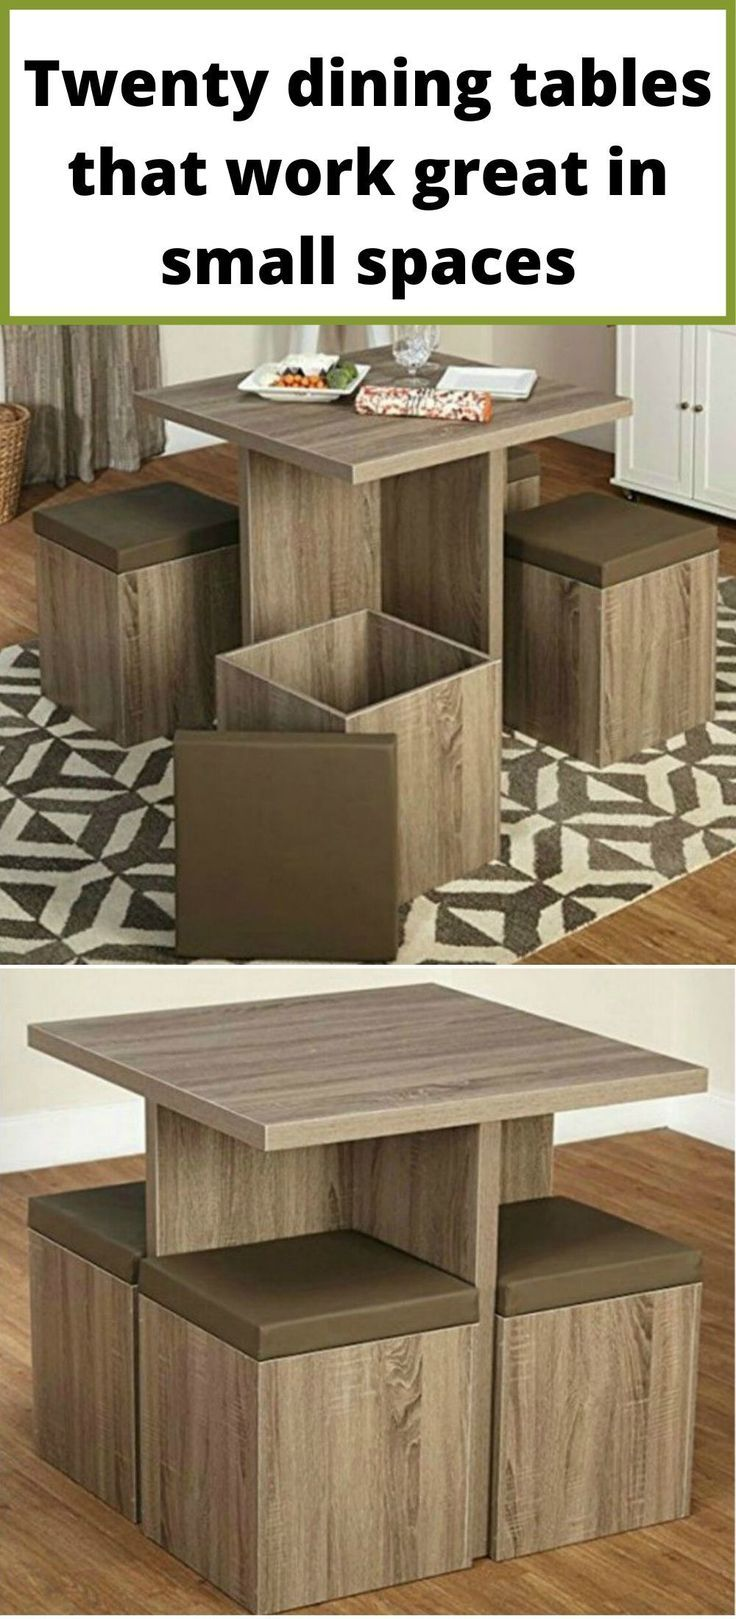 Twenty Dining Tables That Work Great In Small Spaces Living In A Shoebox Living Room Furniture Styles Furniture Table For Small Space [ 1619 x 736 Pixel ]